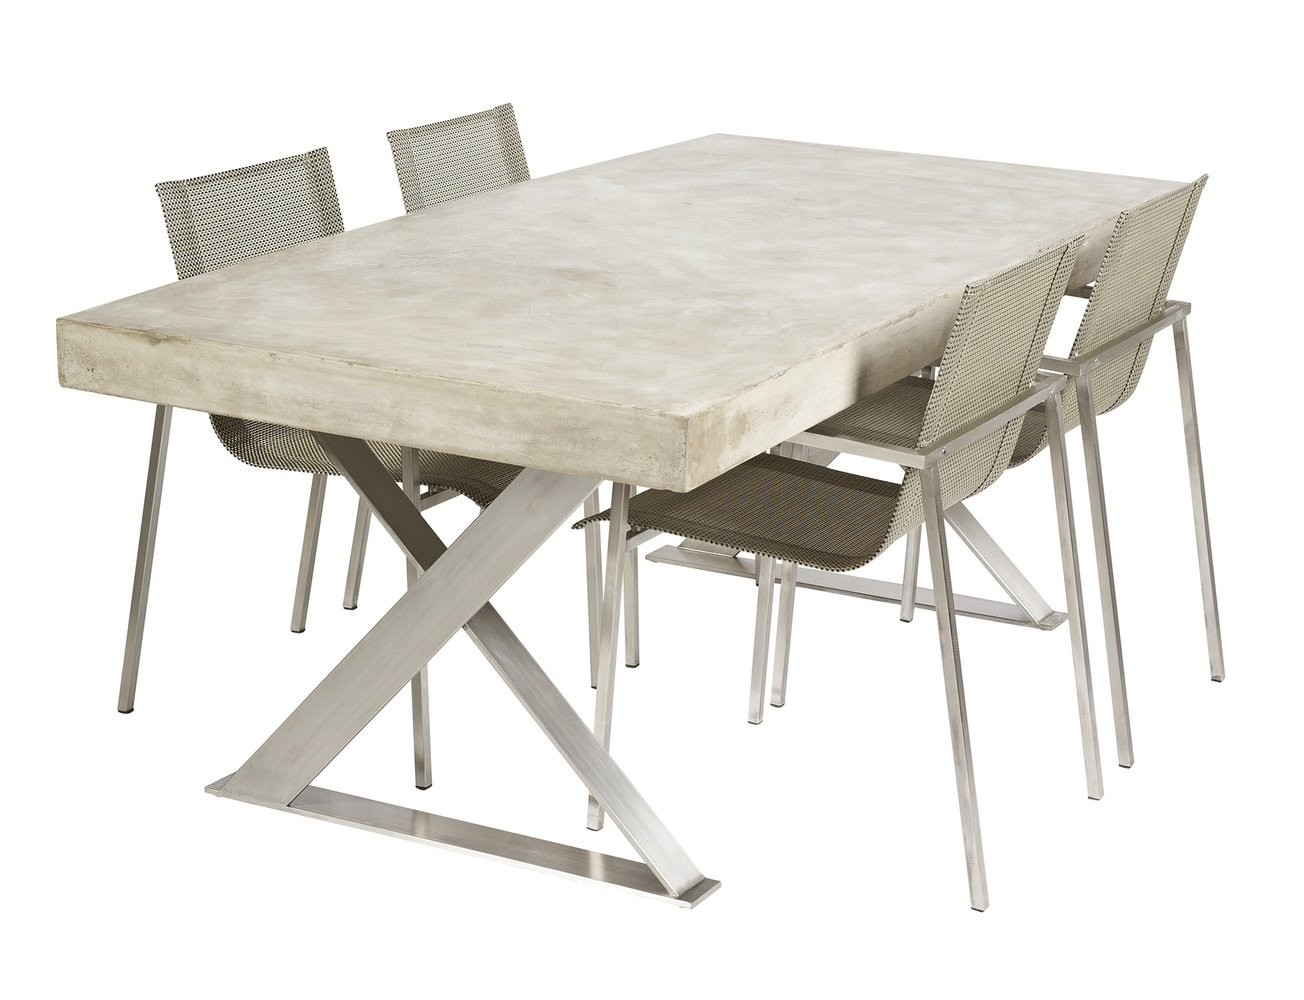 Beau Stainless Steel Dinning Table